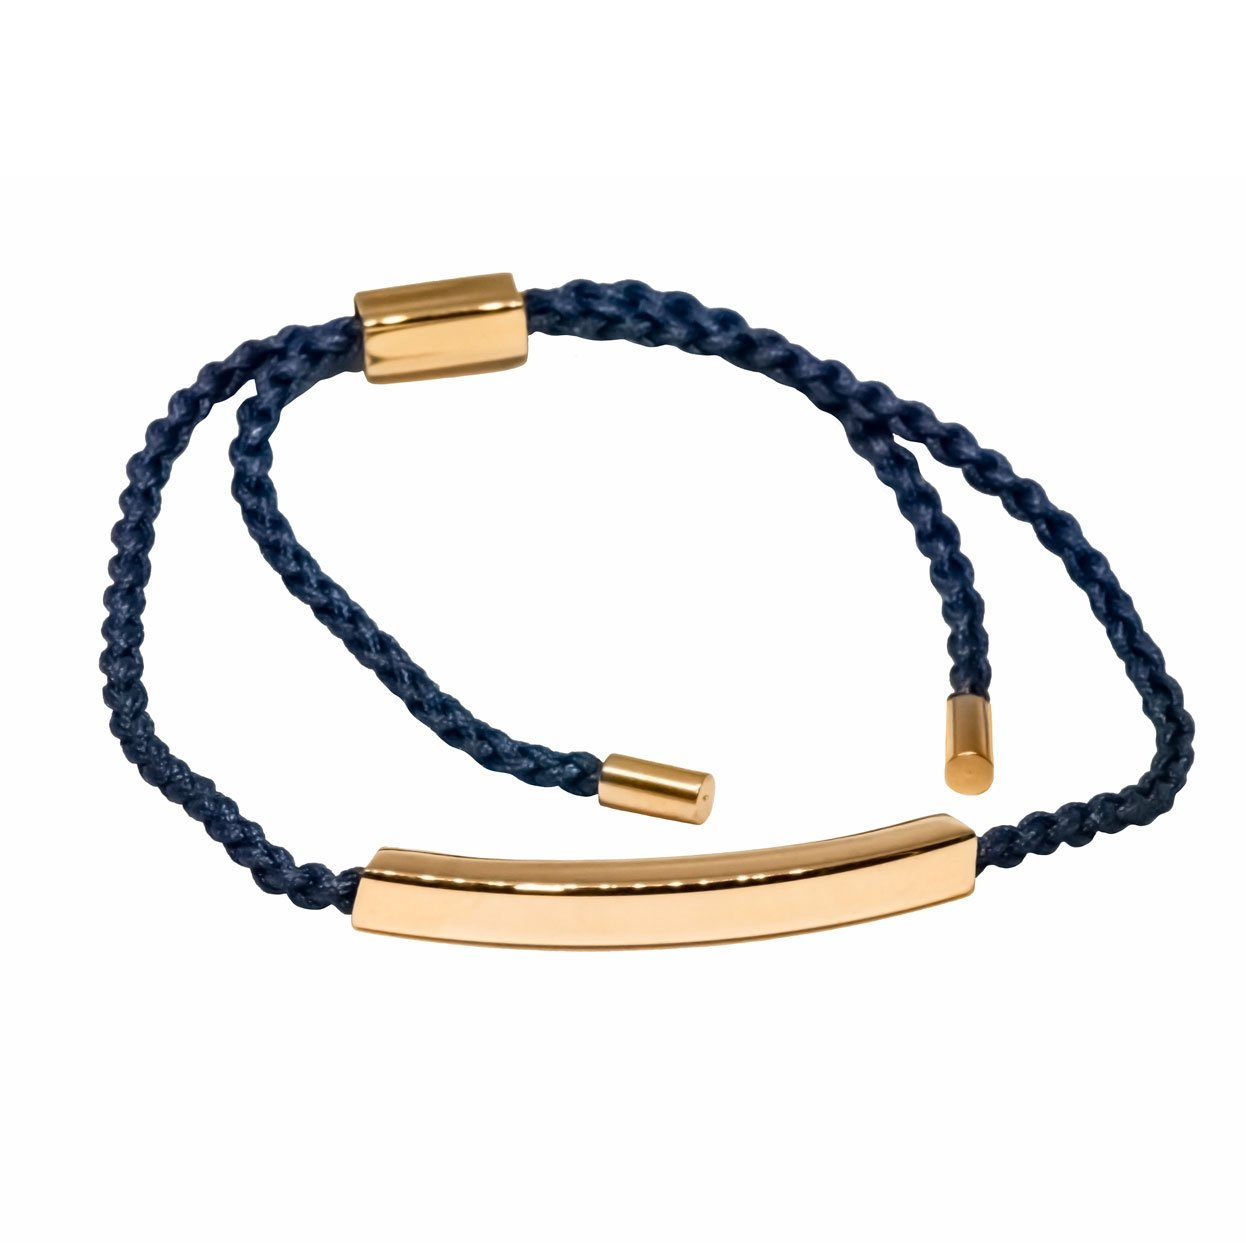 Navy cord bracelet with rose gold 9ct vermeil bar